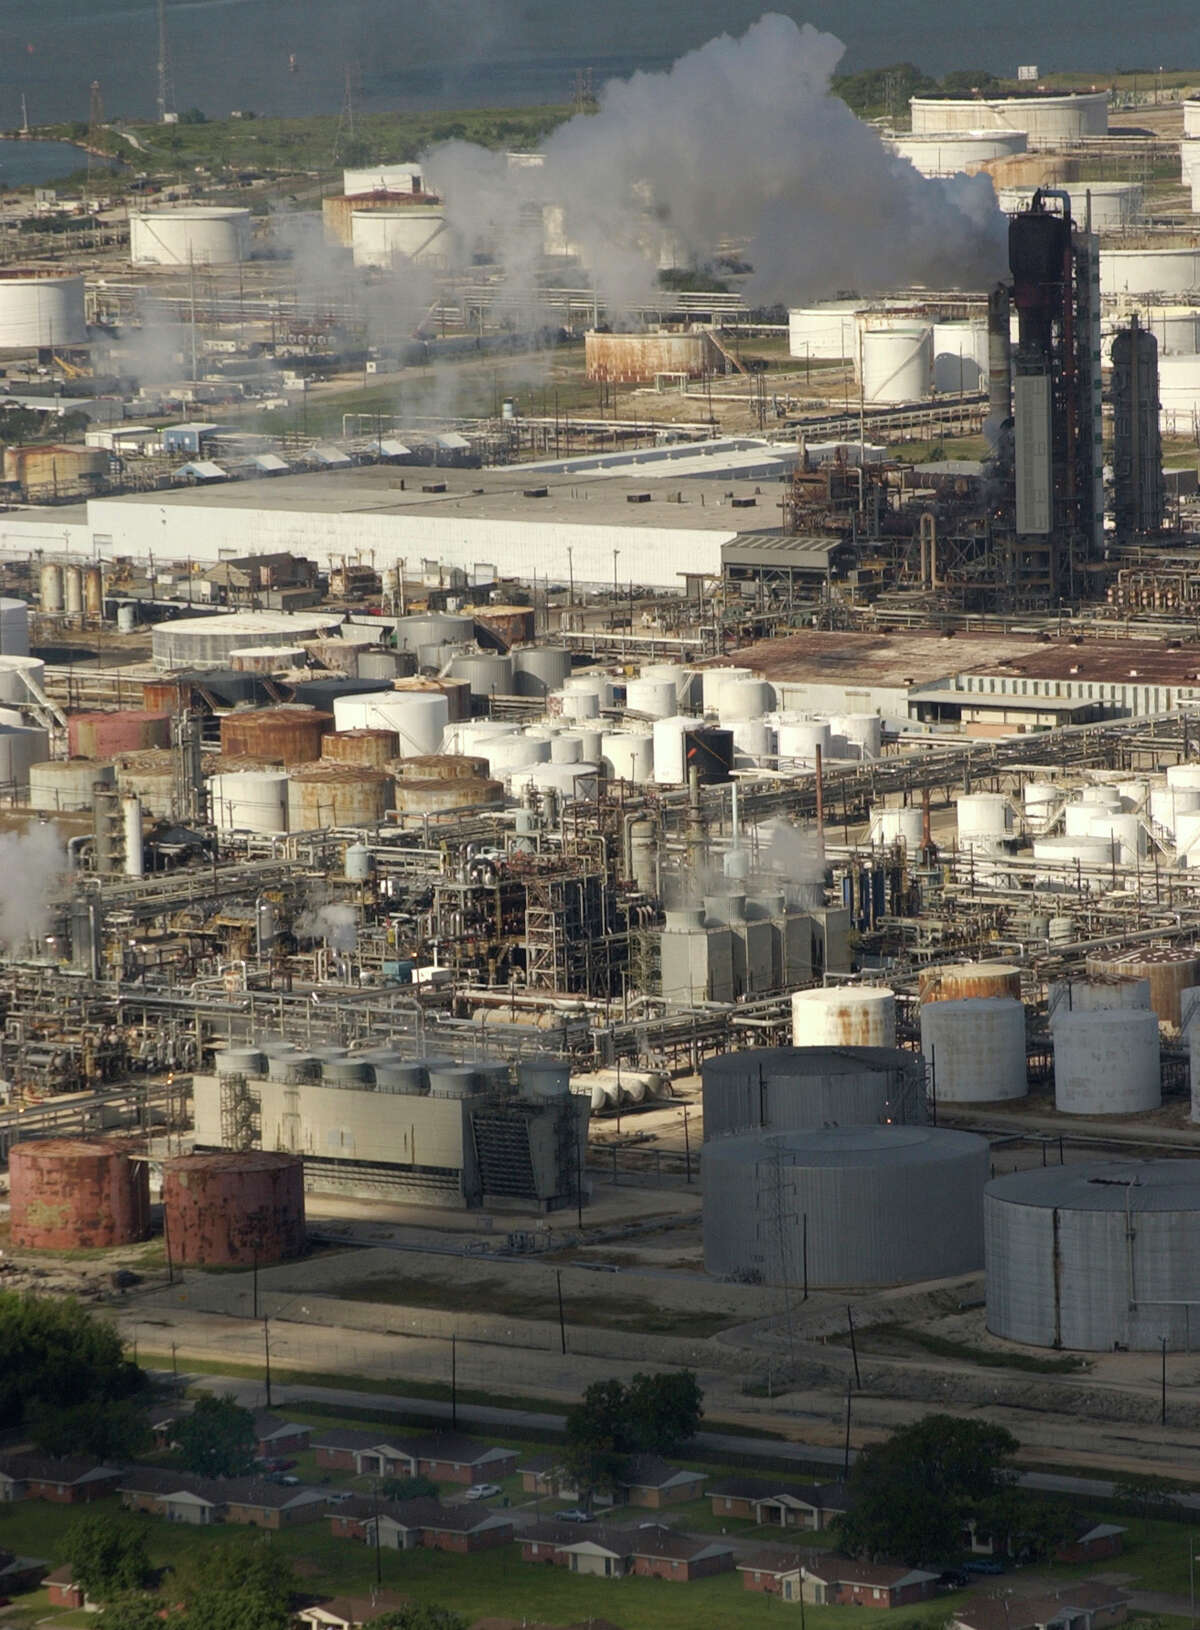 Exxon Mobil Corp. plans to expand the ethylene and polyethylene capacities of its ExxonMobil Chemical Co. complex in Baytown, shown in a 2004 file photo.